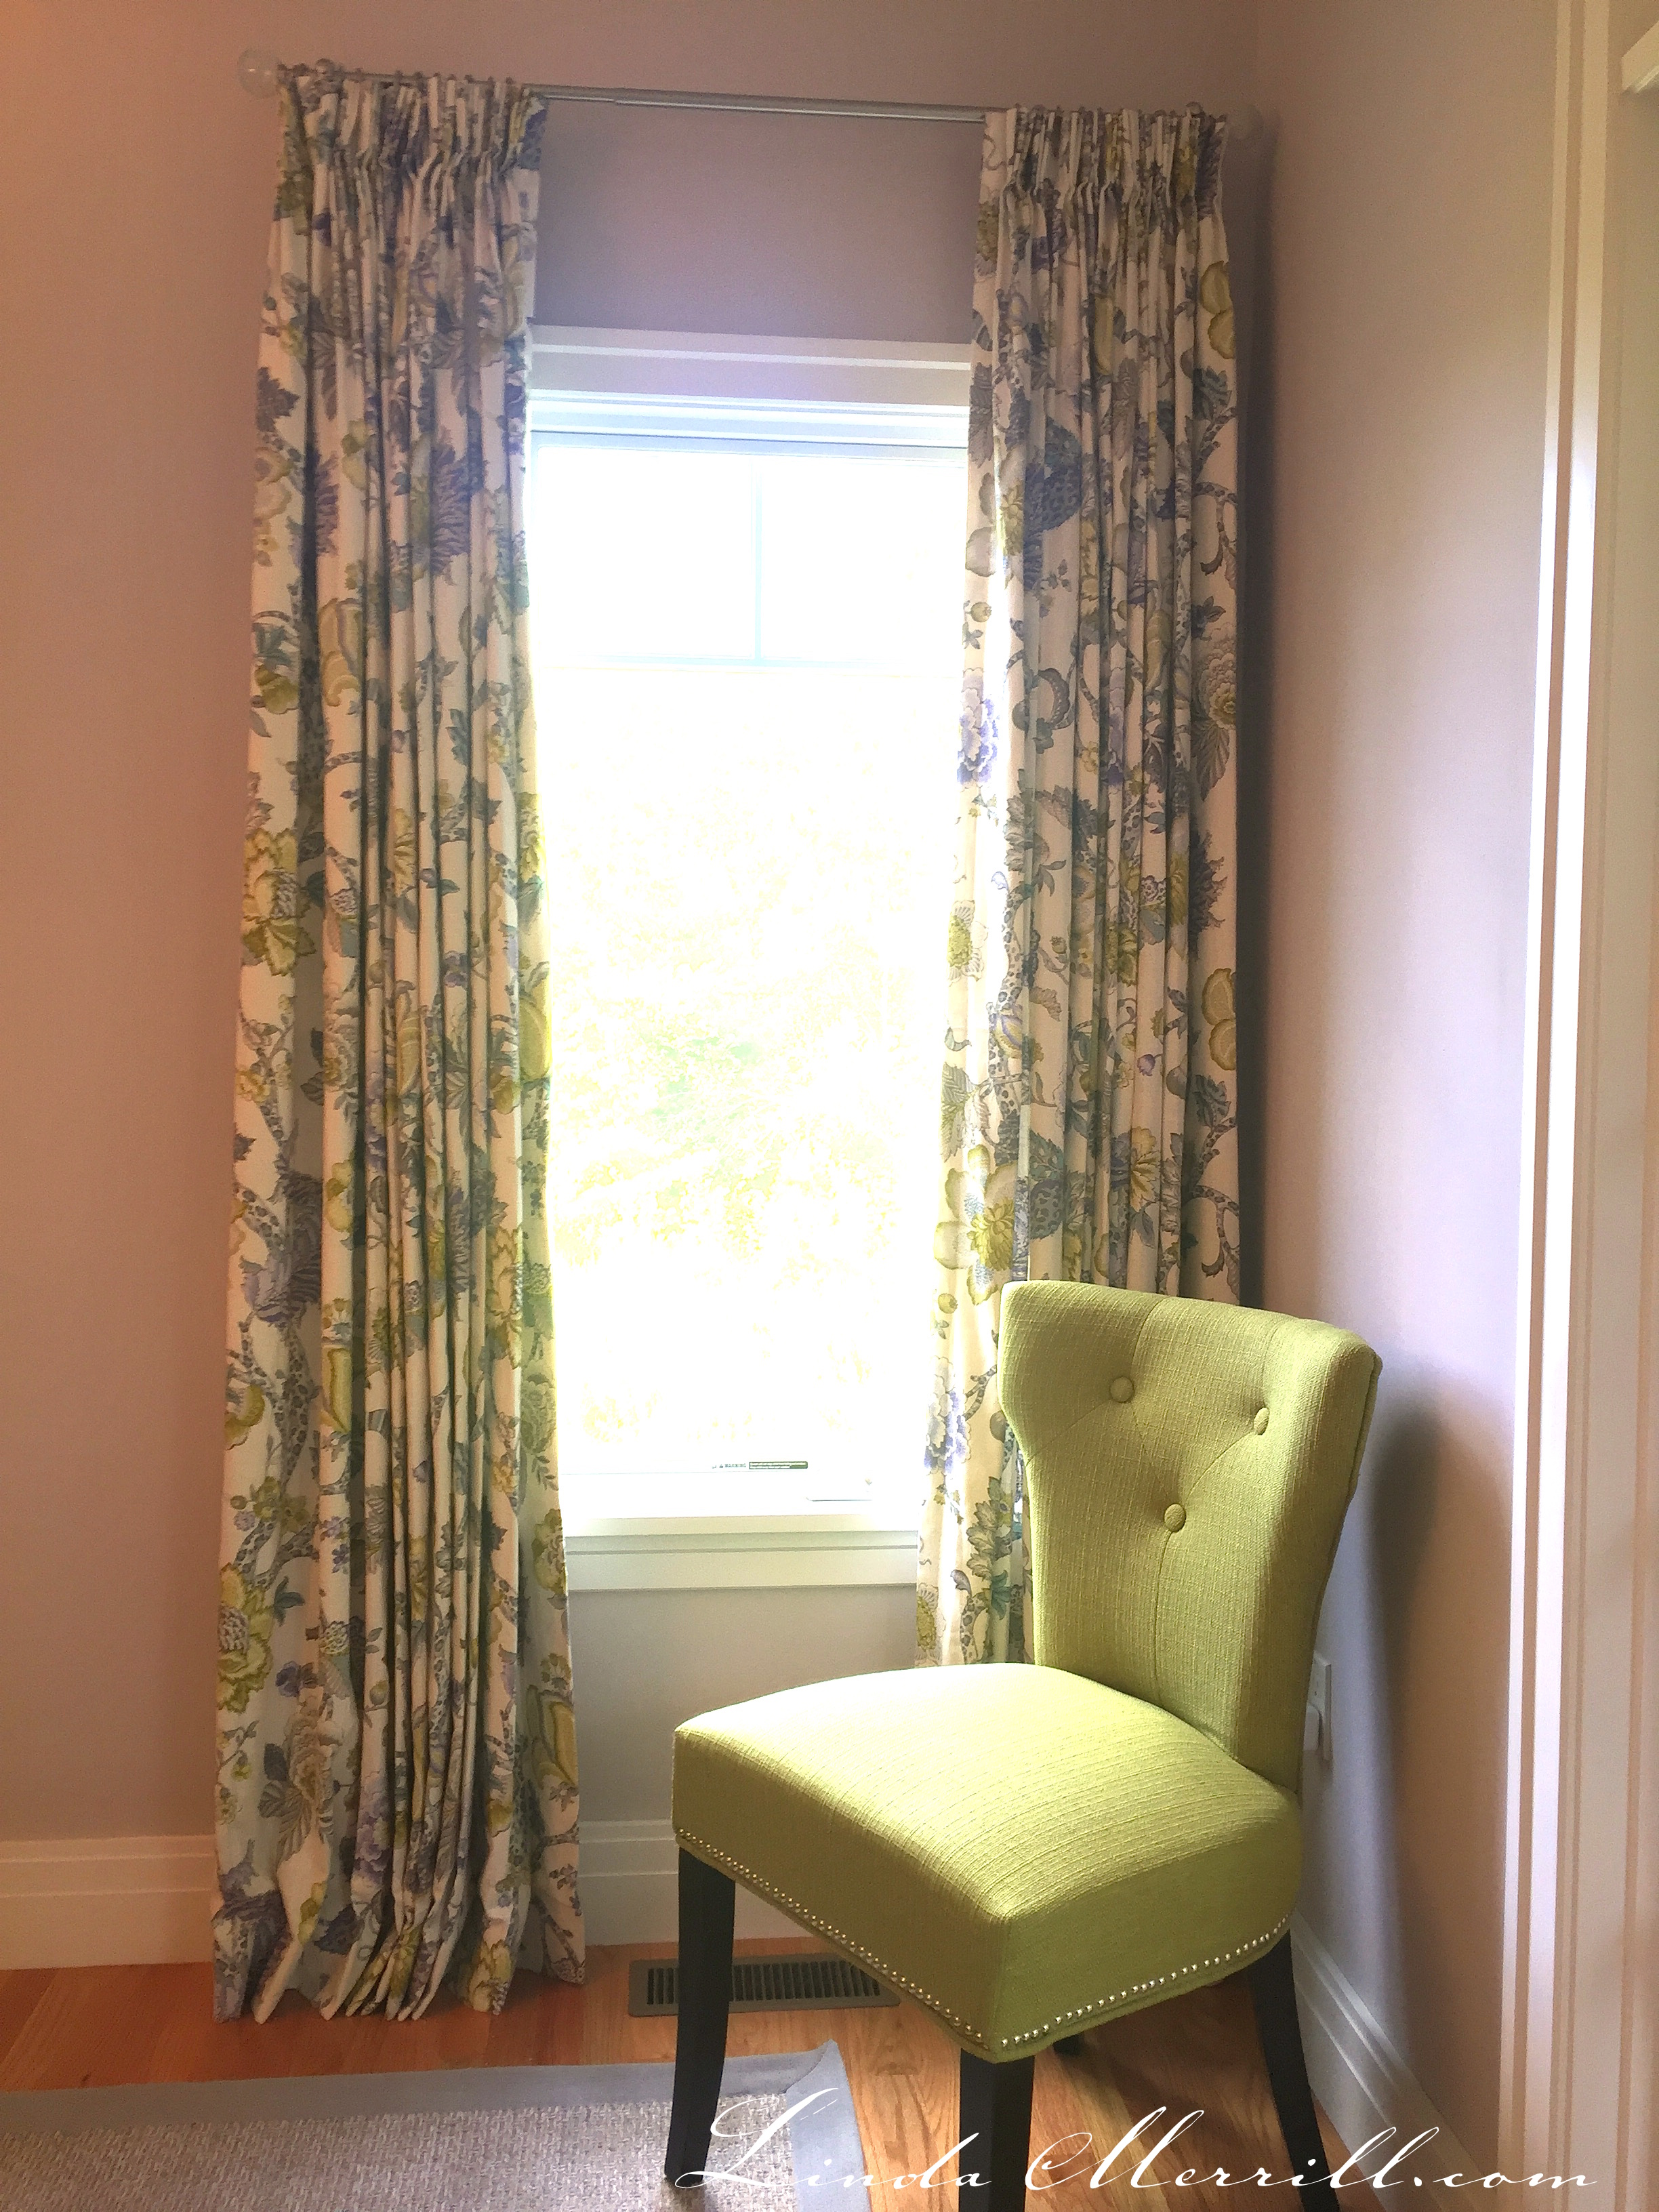 Curtain For Double Window Design Details How Wide Should My Drapery Panels Be Linda Merrill